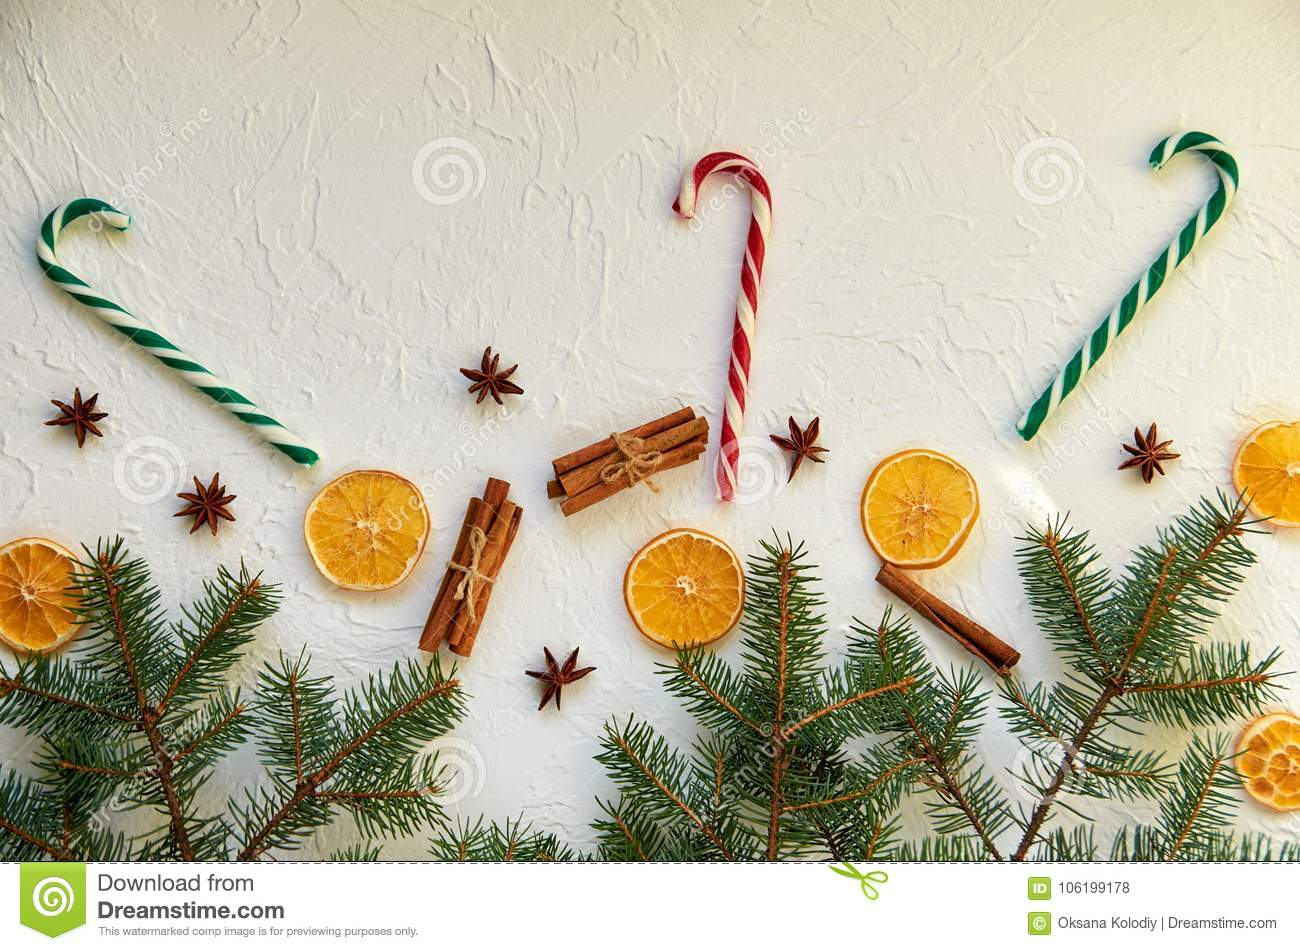 New year food decorations with fir branches, three red and green candy cones and traditional holiday spices: anise star, cinnamon